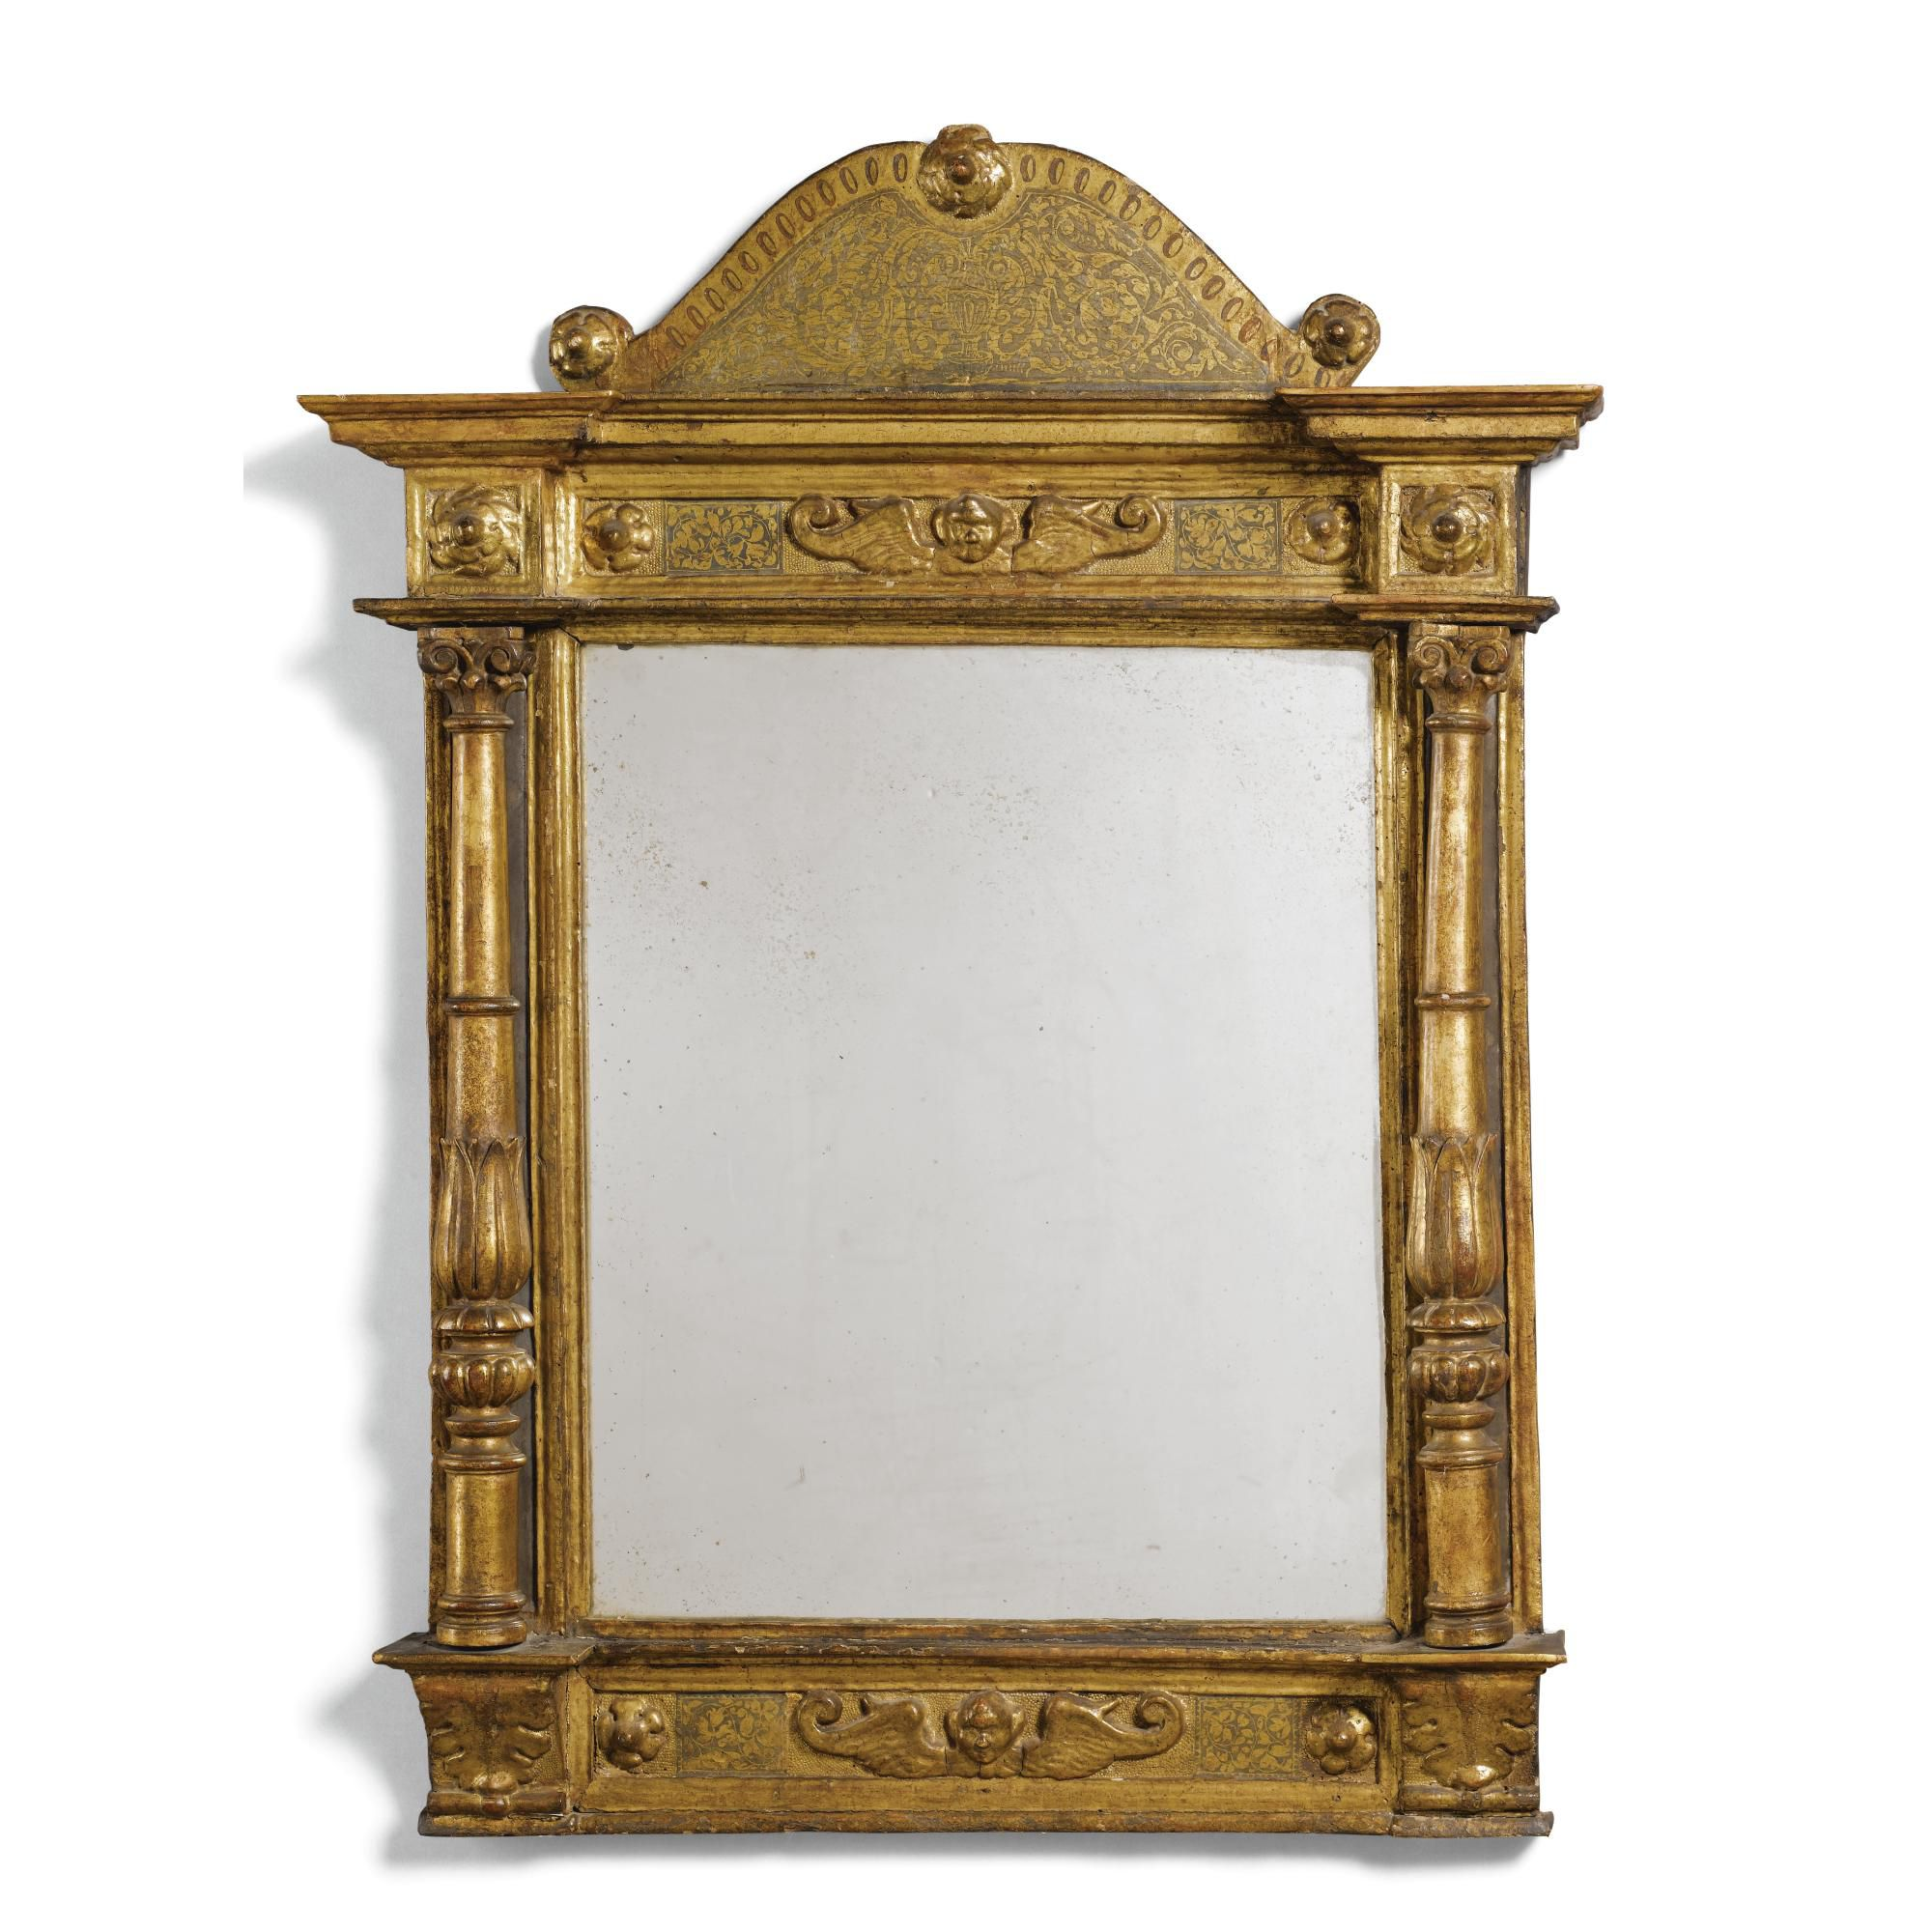 An Italian Painted And Parcel Gilt Tabernacle Frame Early 17Th Century